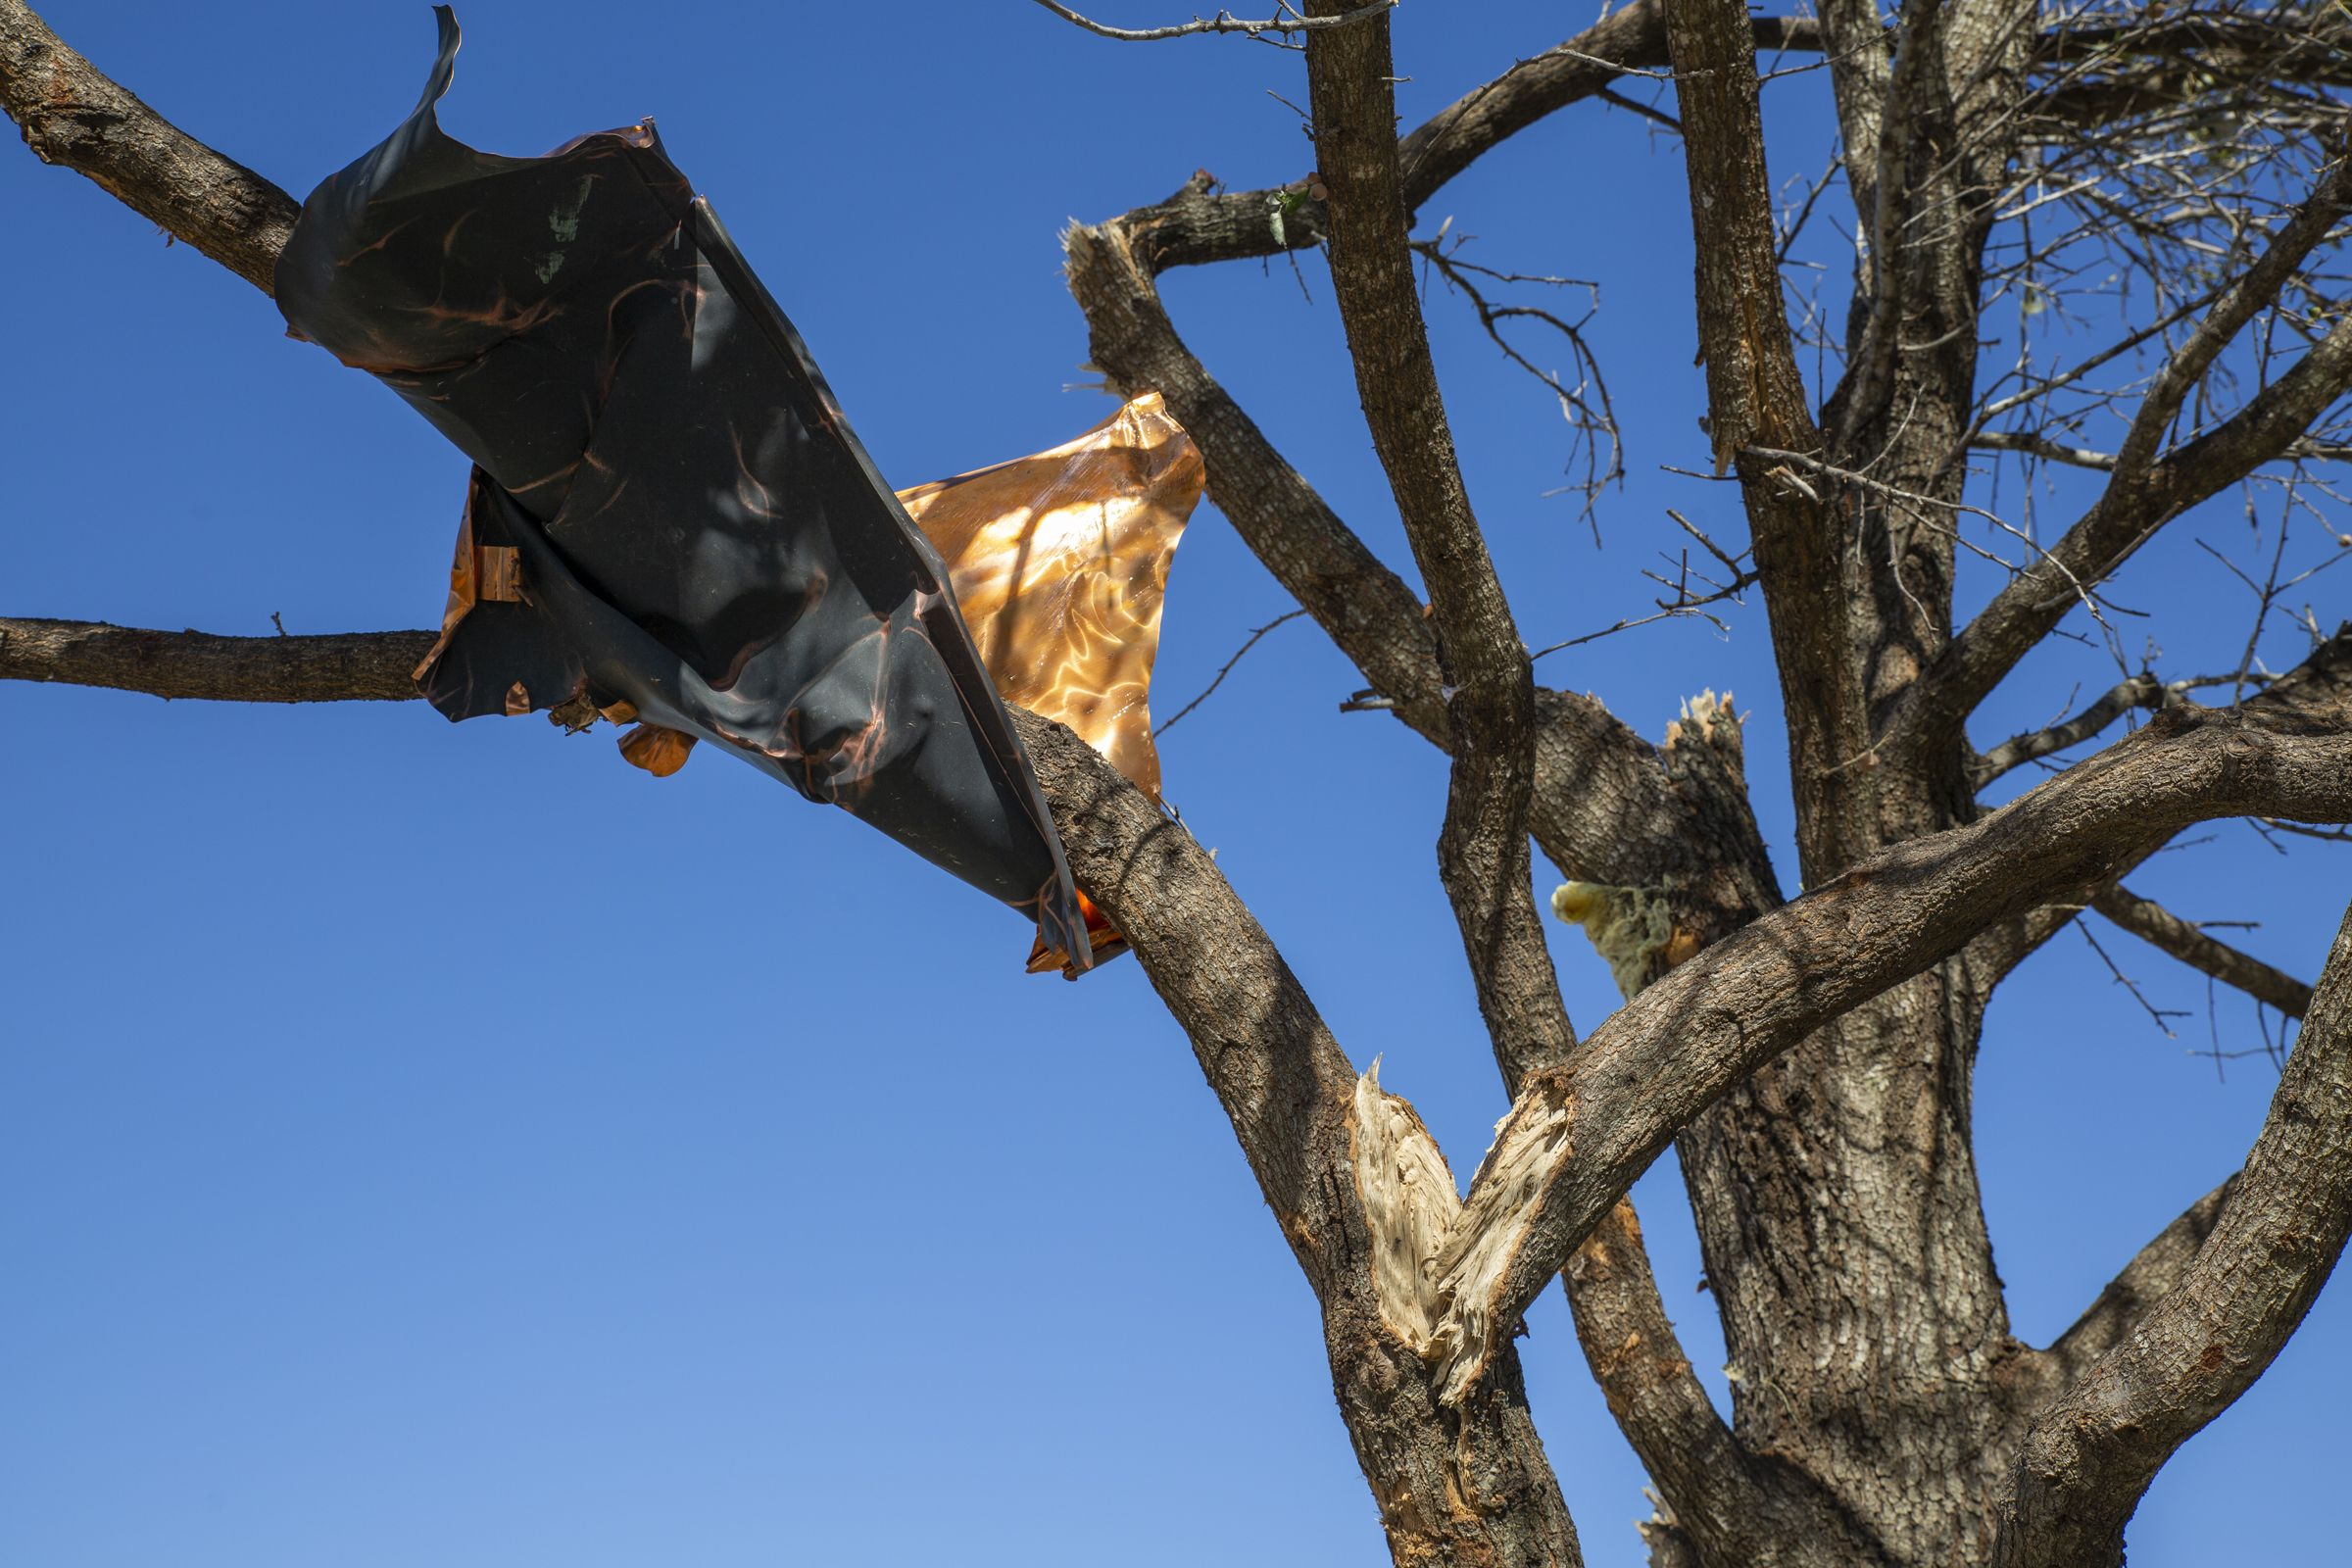 High winds wrapped a piece of copper roofing around a tree branch several hundred feet away.